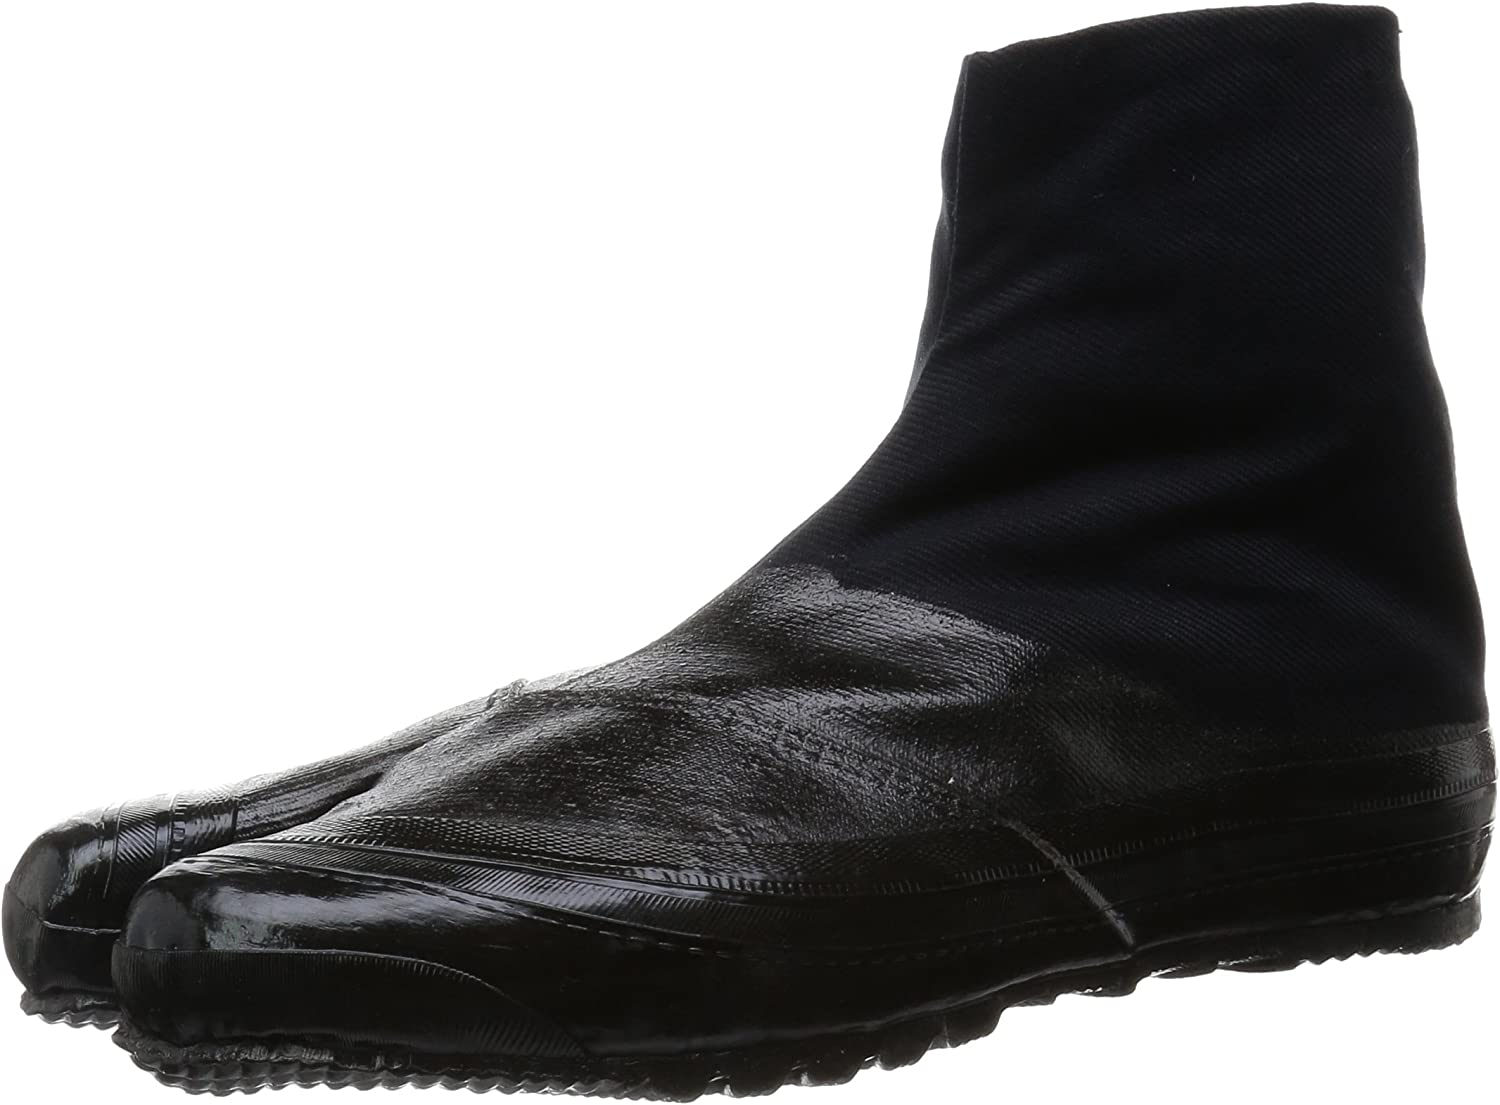 ALL BLACK Ninja Tabi Boot   Japanese shoes & Rubber Sole By Marugo from Jap...